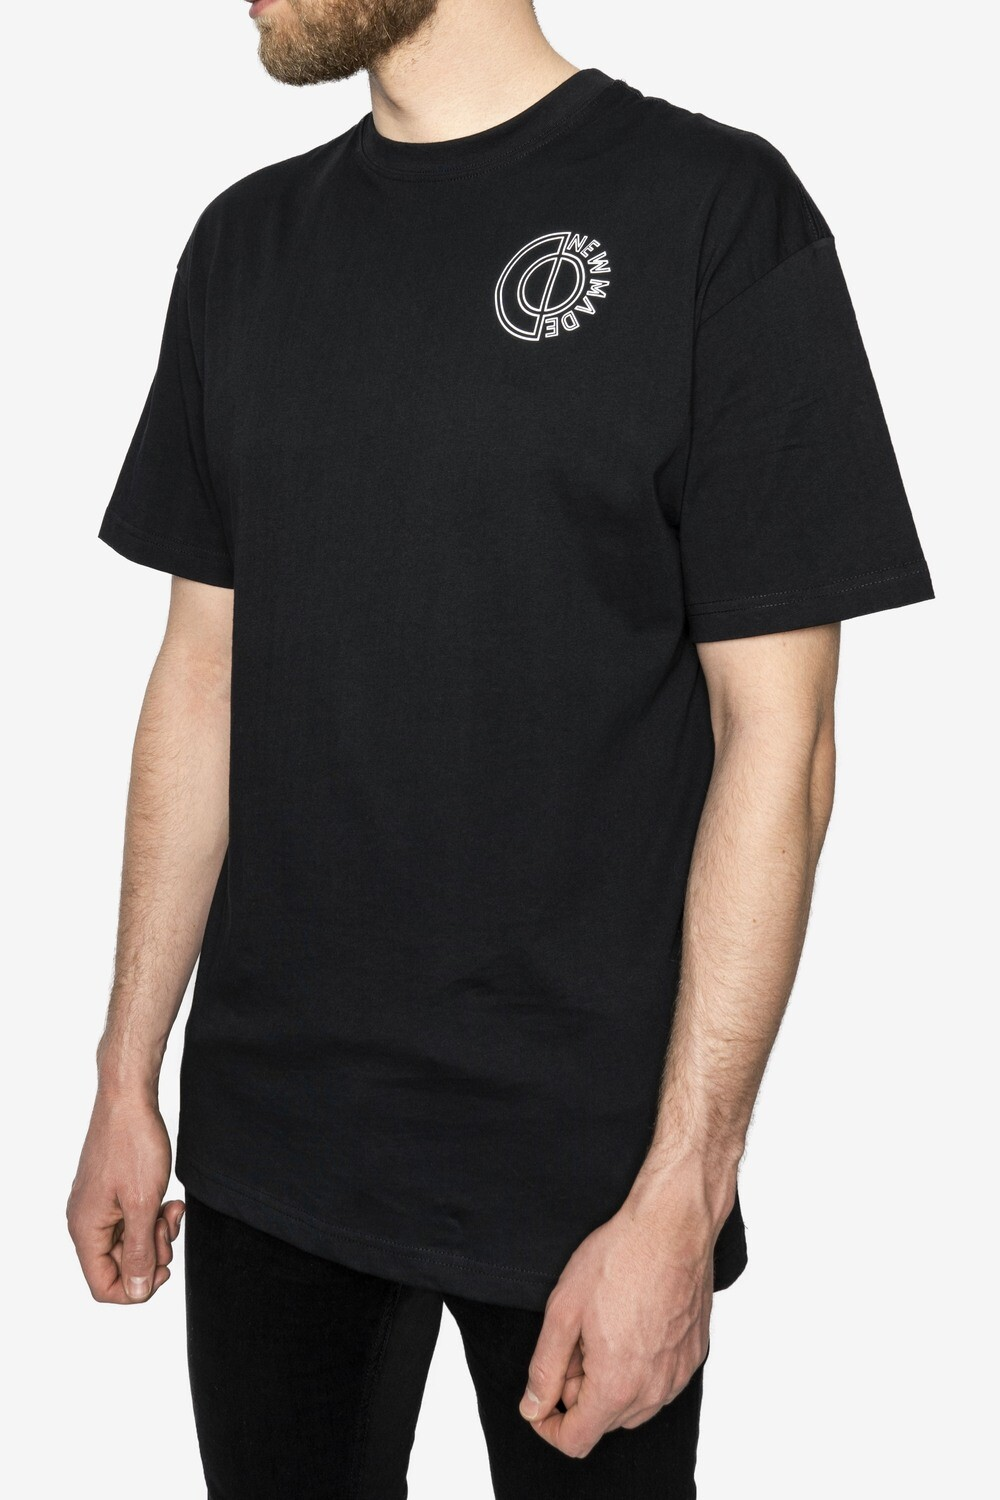 NEWMADE 2ND Tee (NEW)